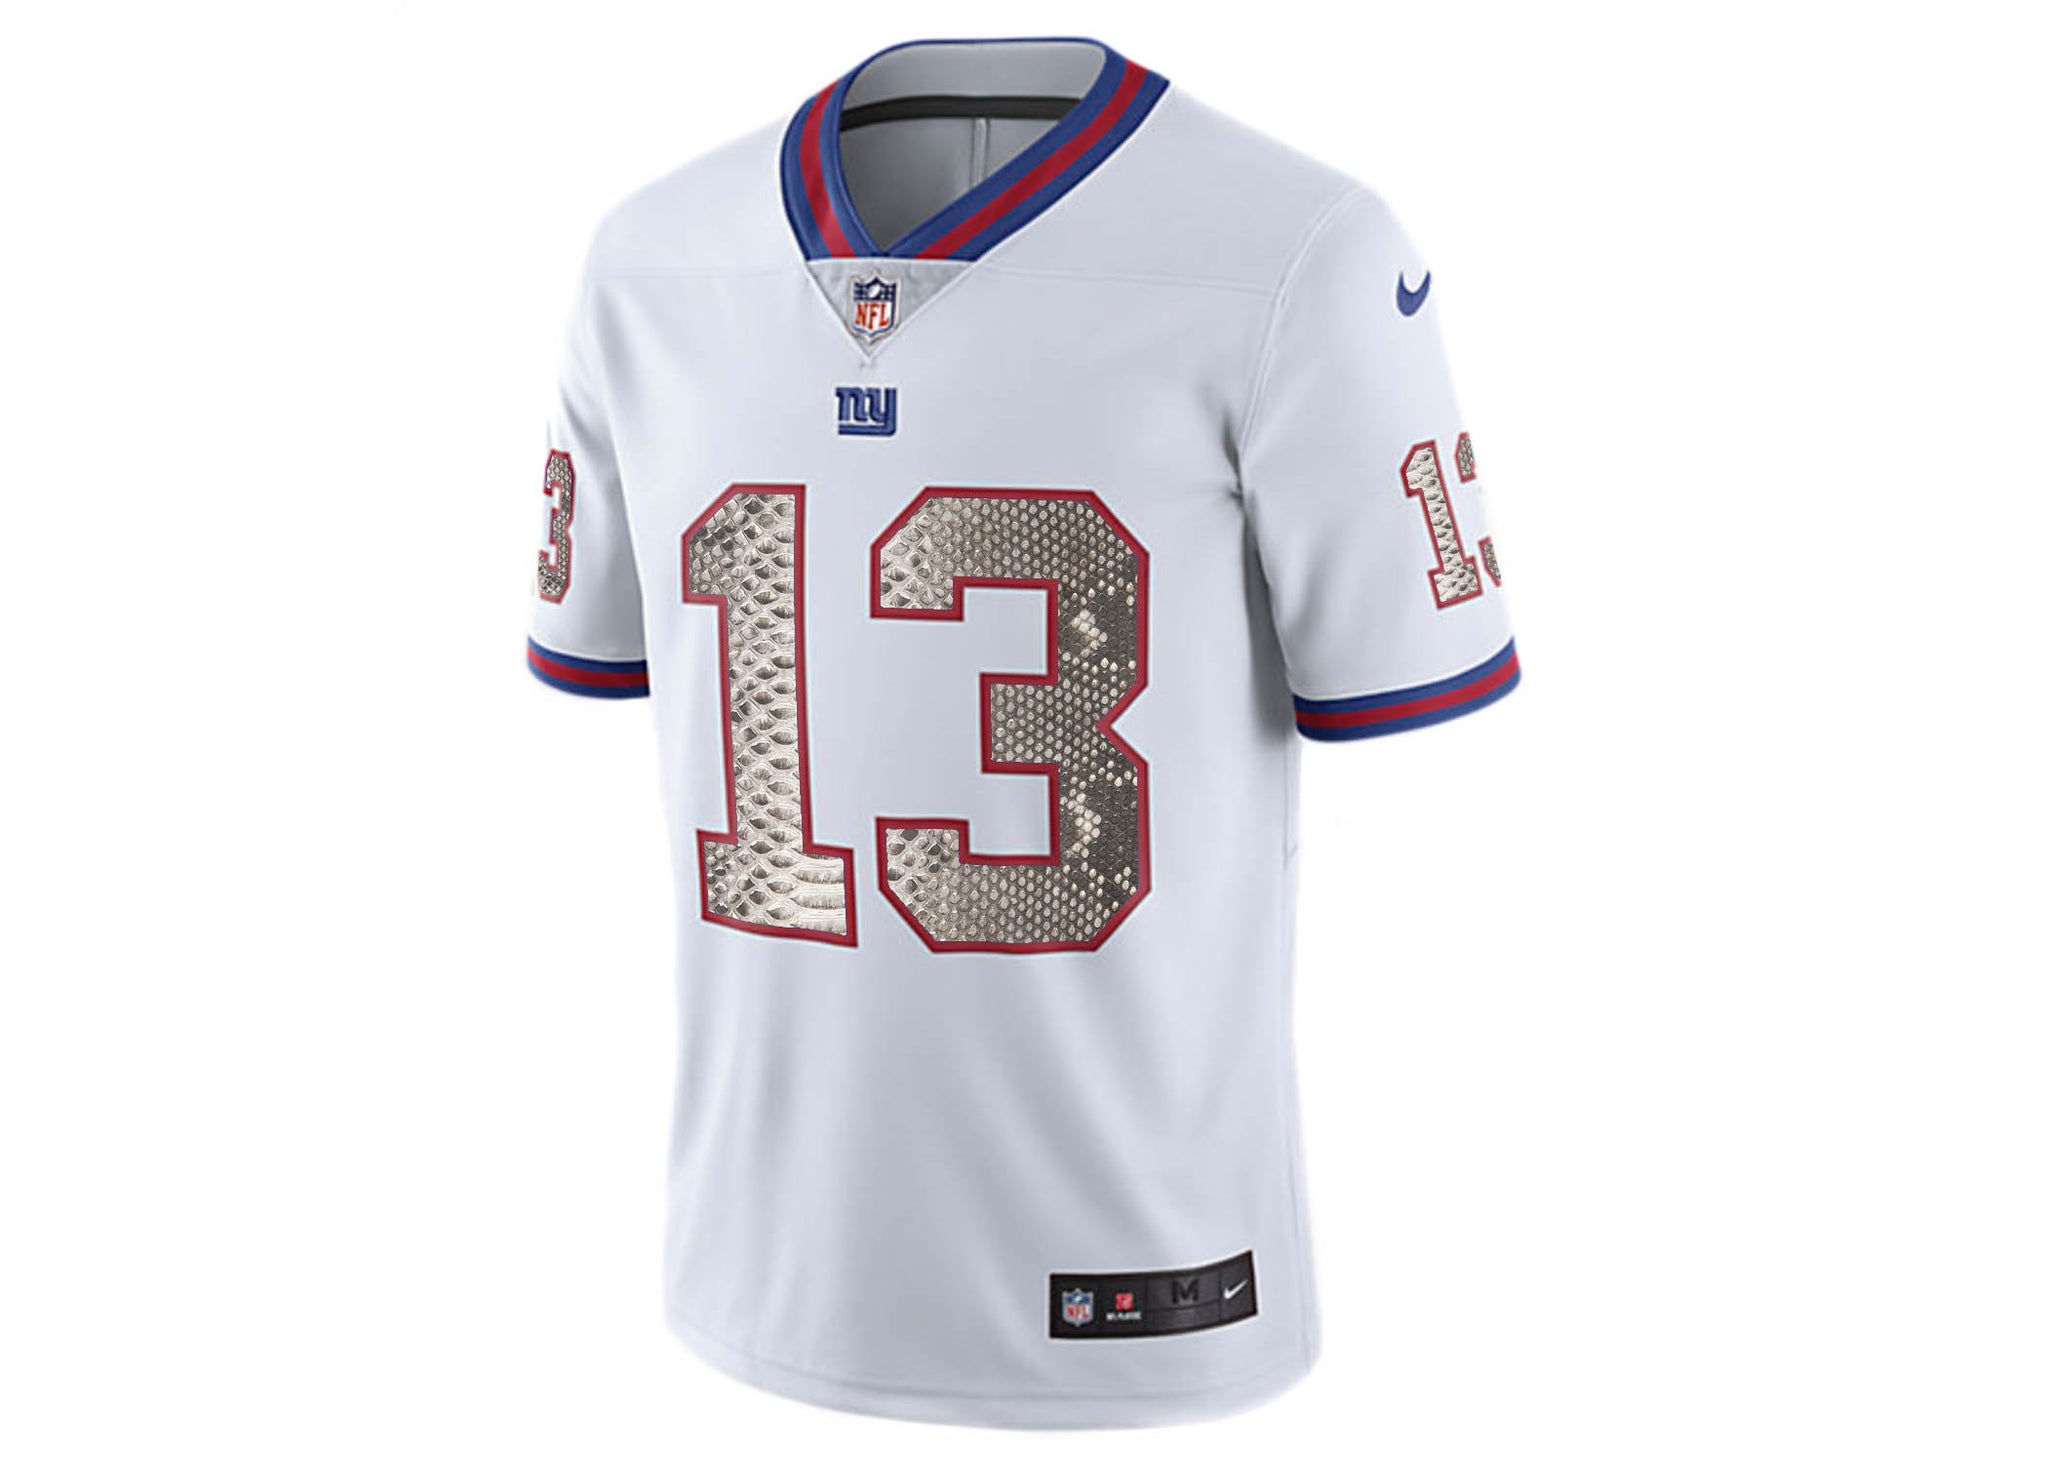 competitive price e7eff 5cb91 Nike Odell Beckham Jr. White/Blue New York Giants Python Jersey